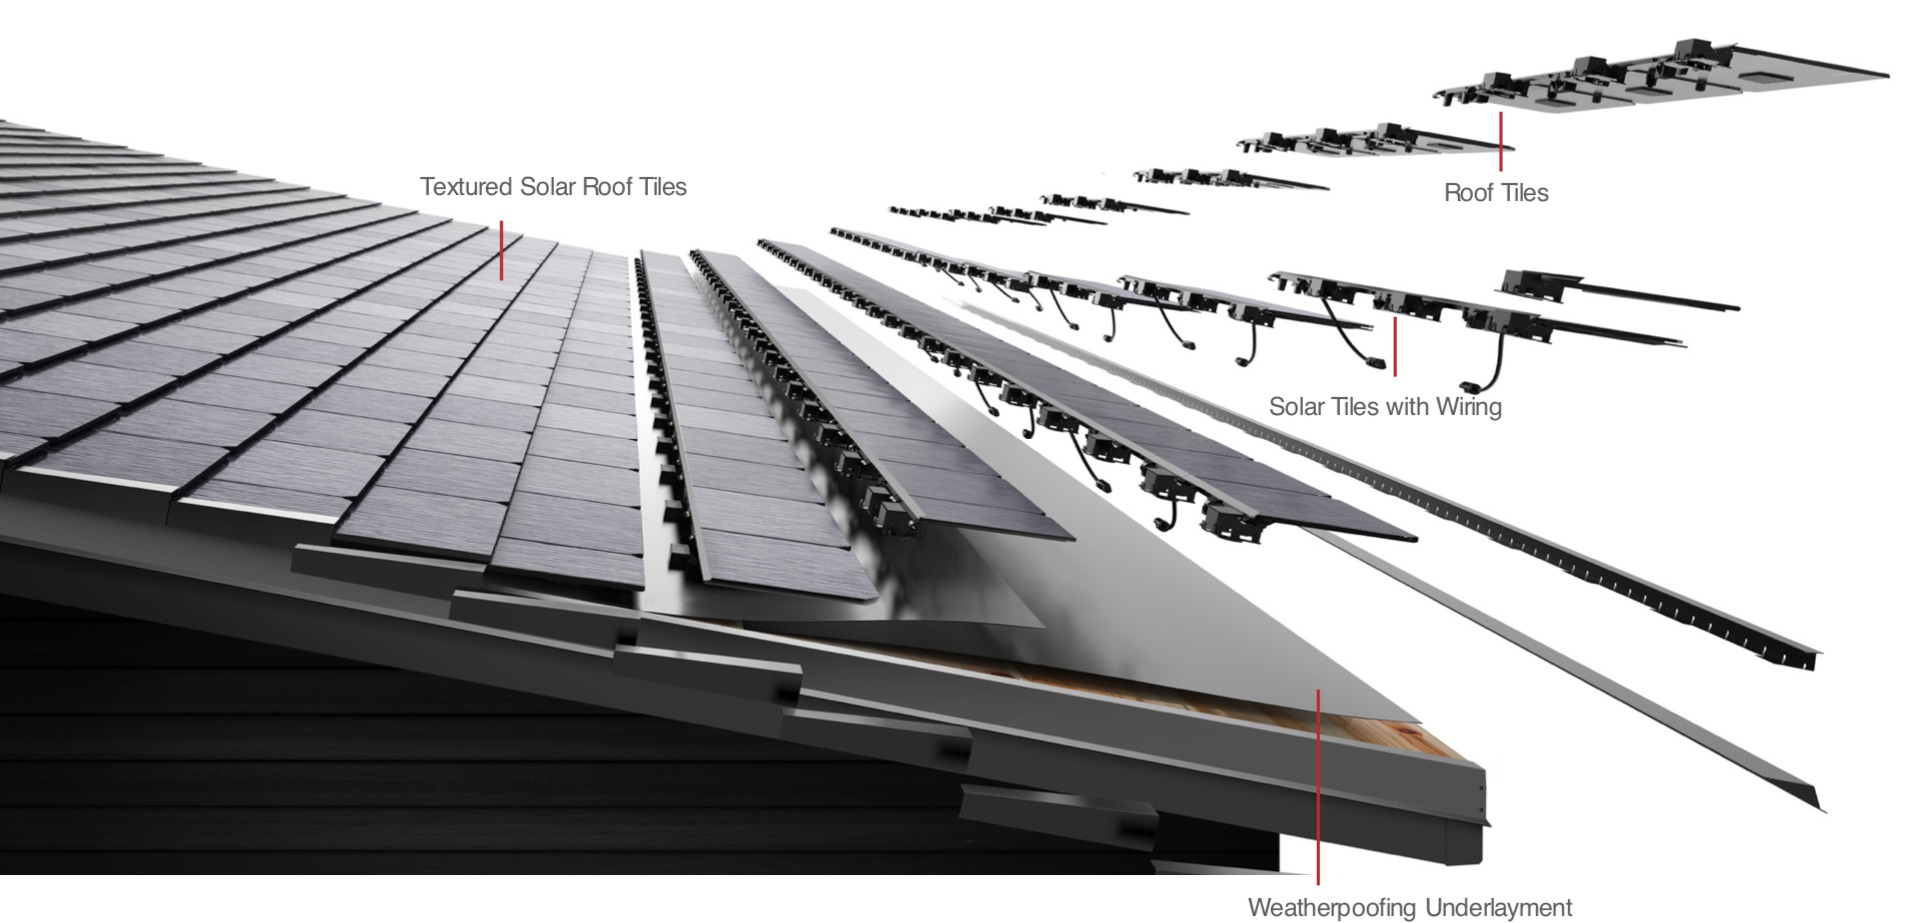 Tesla S New Solar Roofs Are More Efficient Than Panels And Way Better Looking